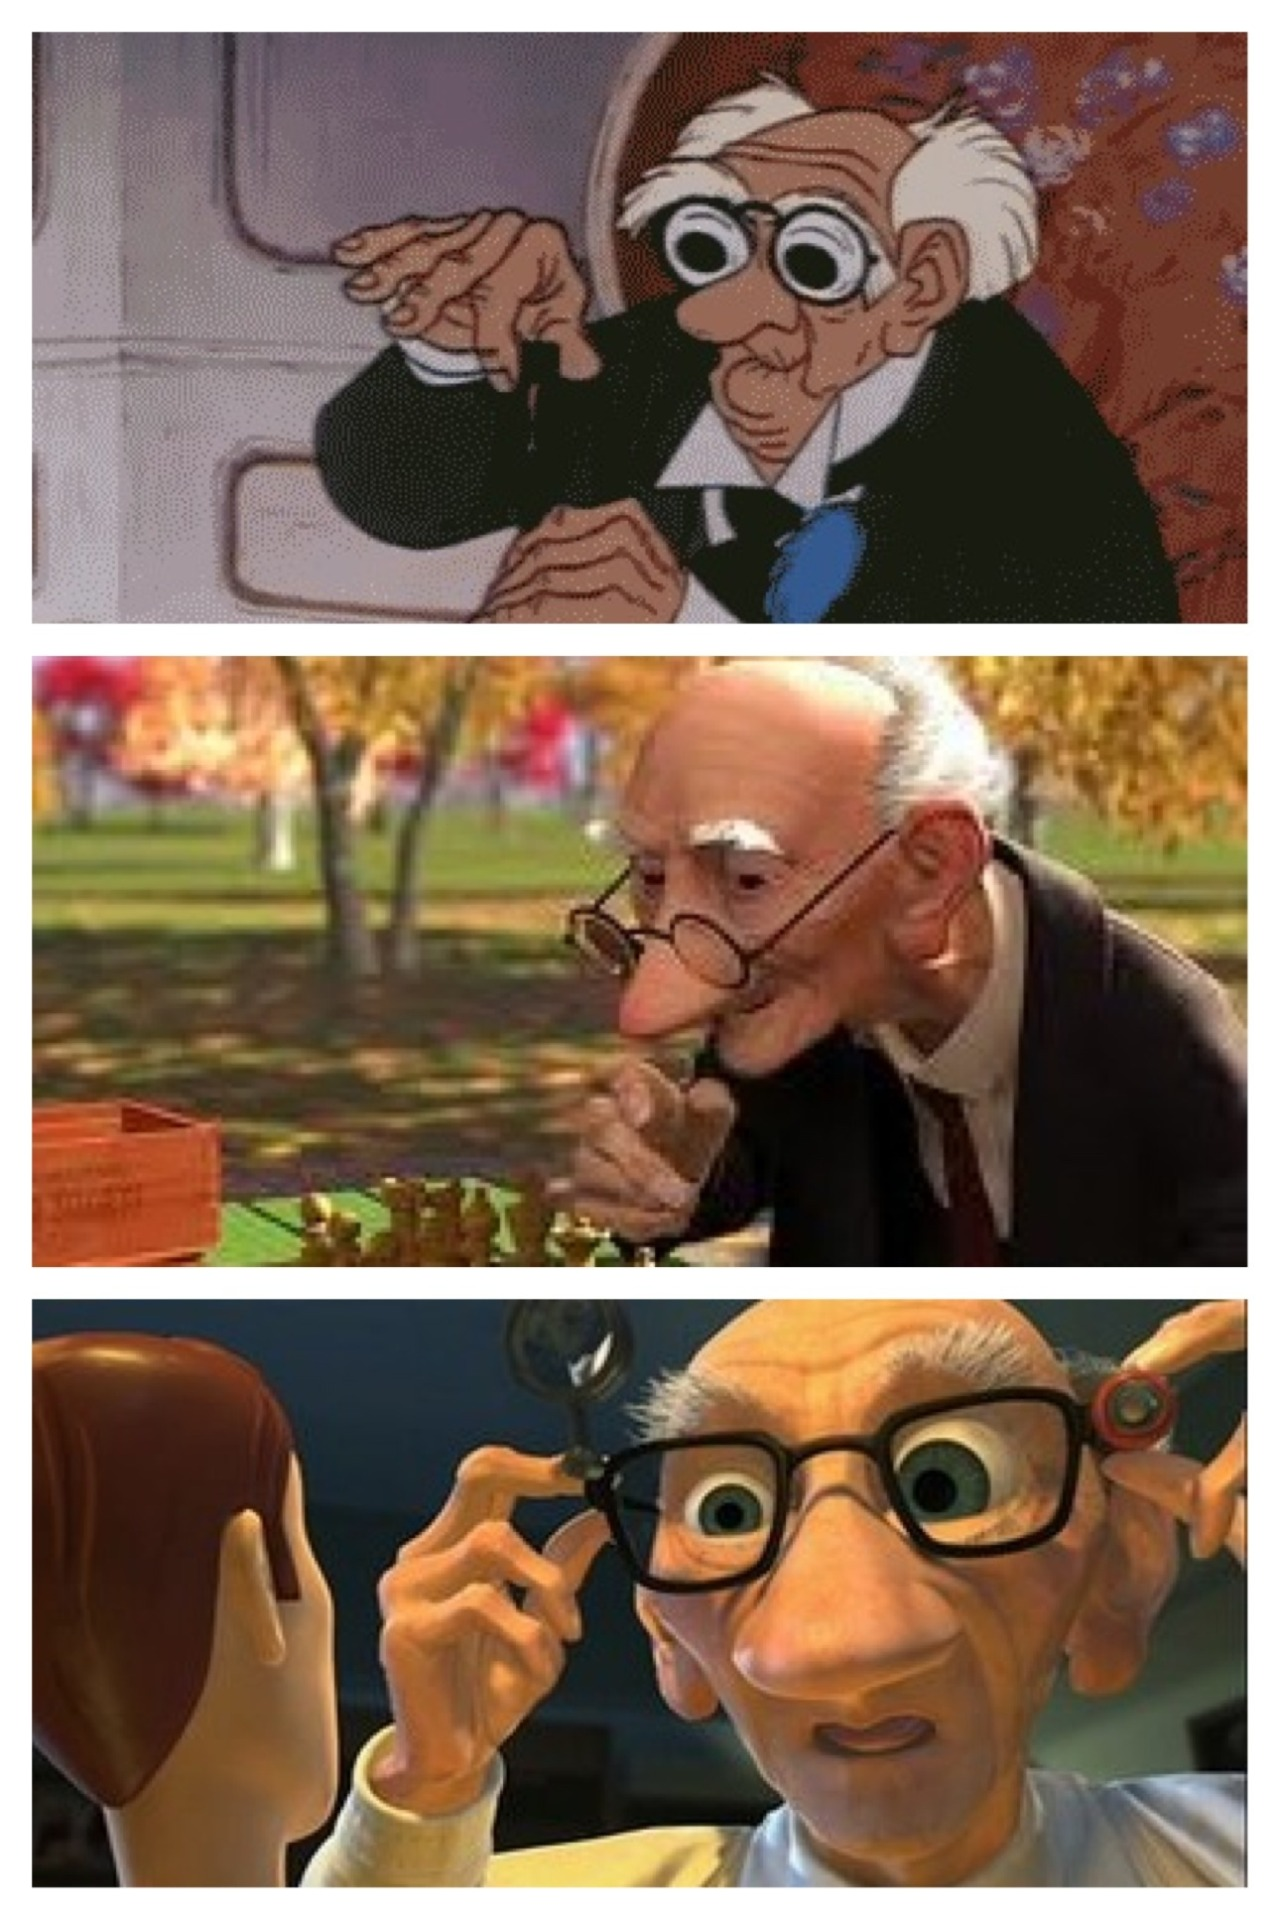 Old Man From Toy Story : story, Disney, World, Disneyland, Spring, About, Aristocats,...